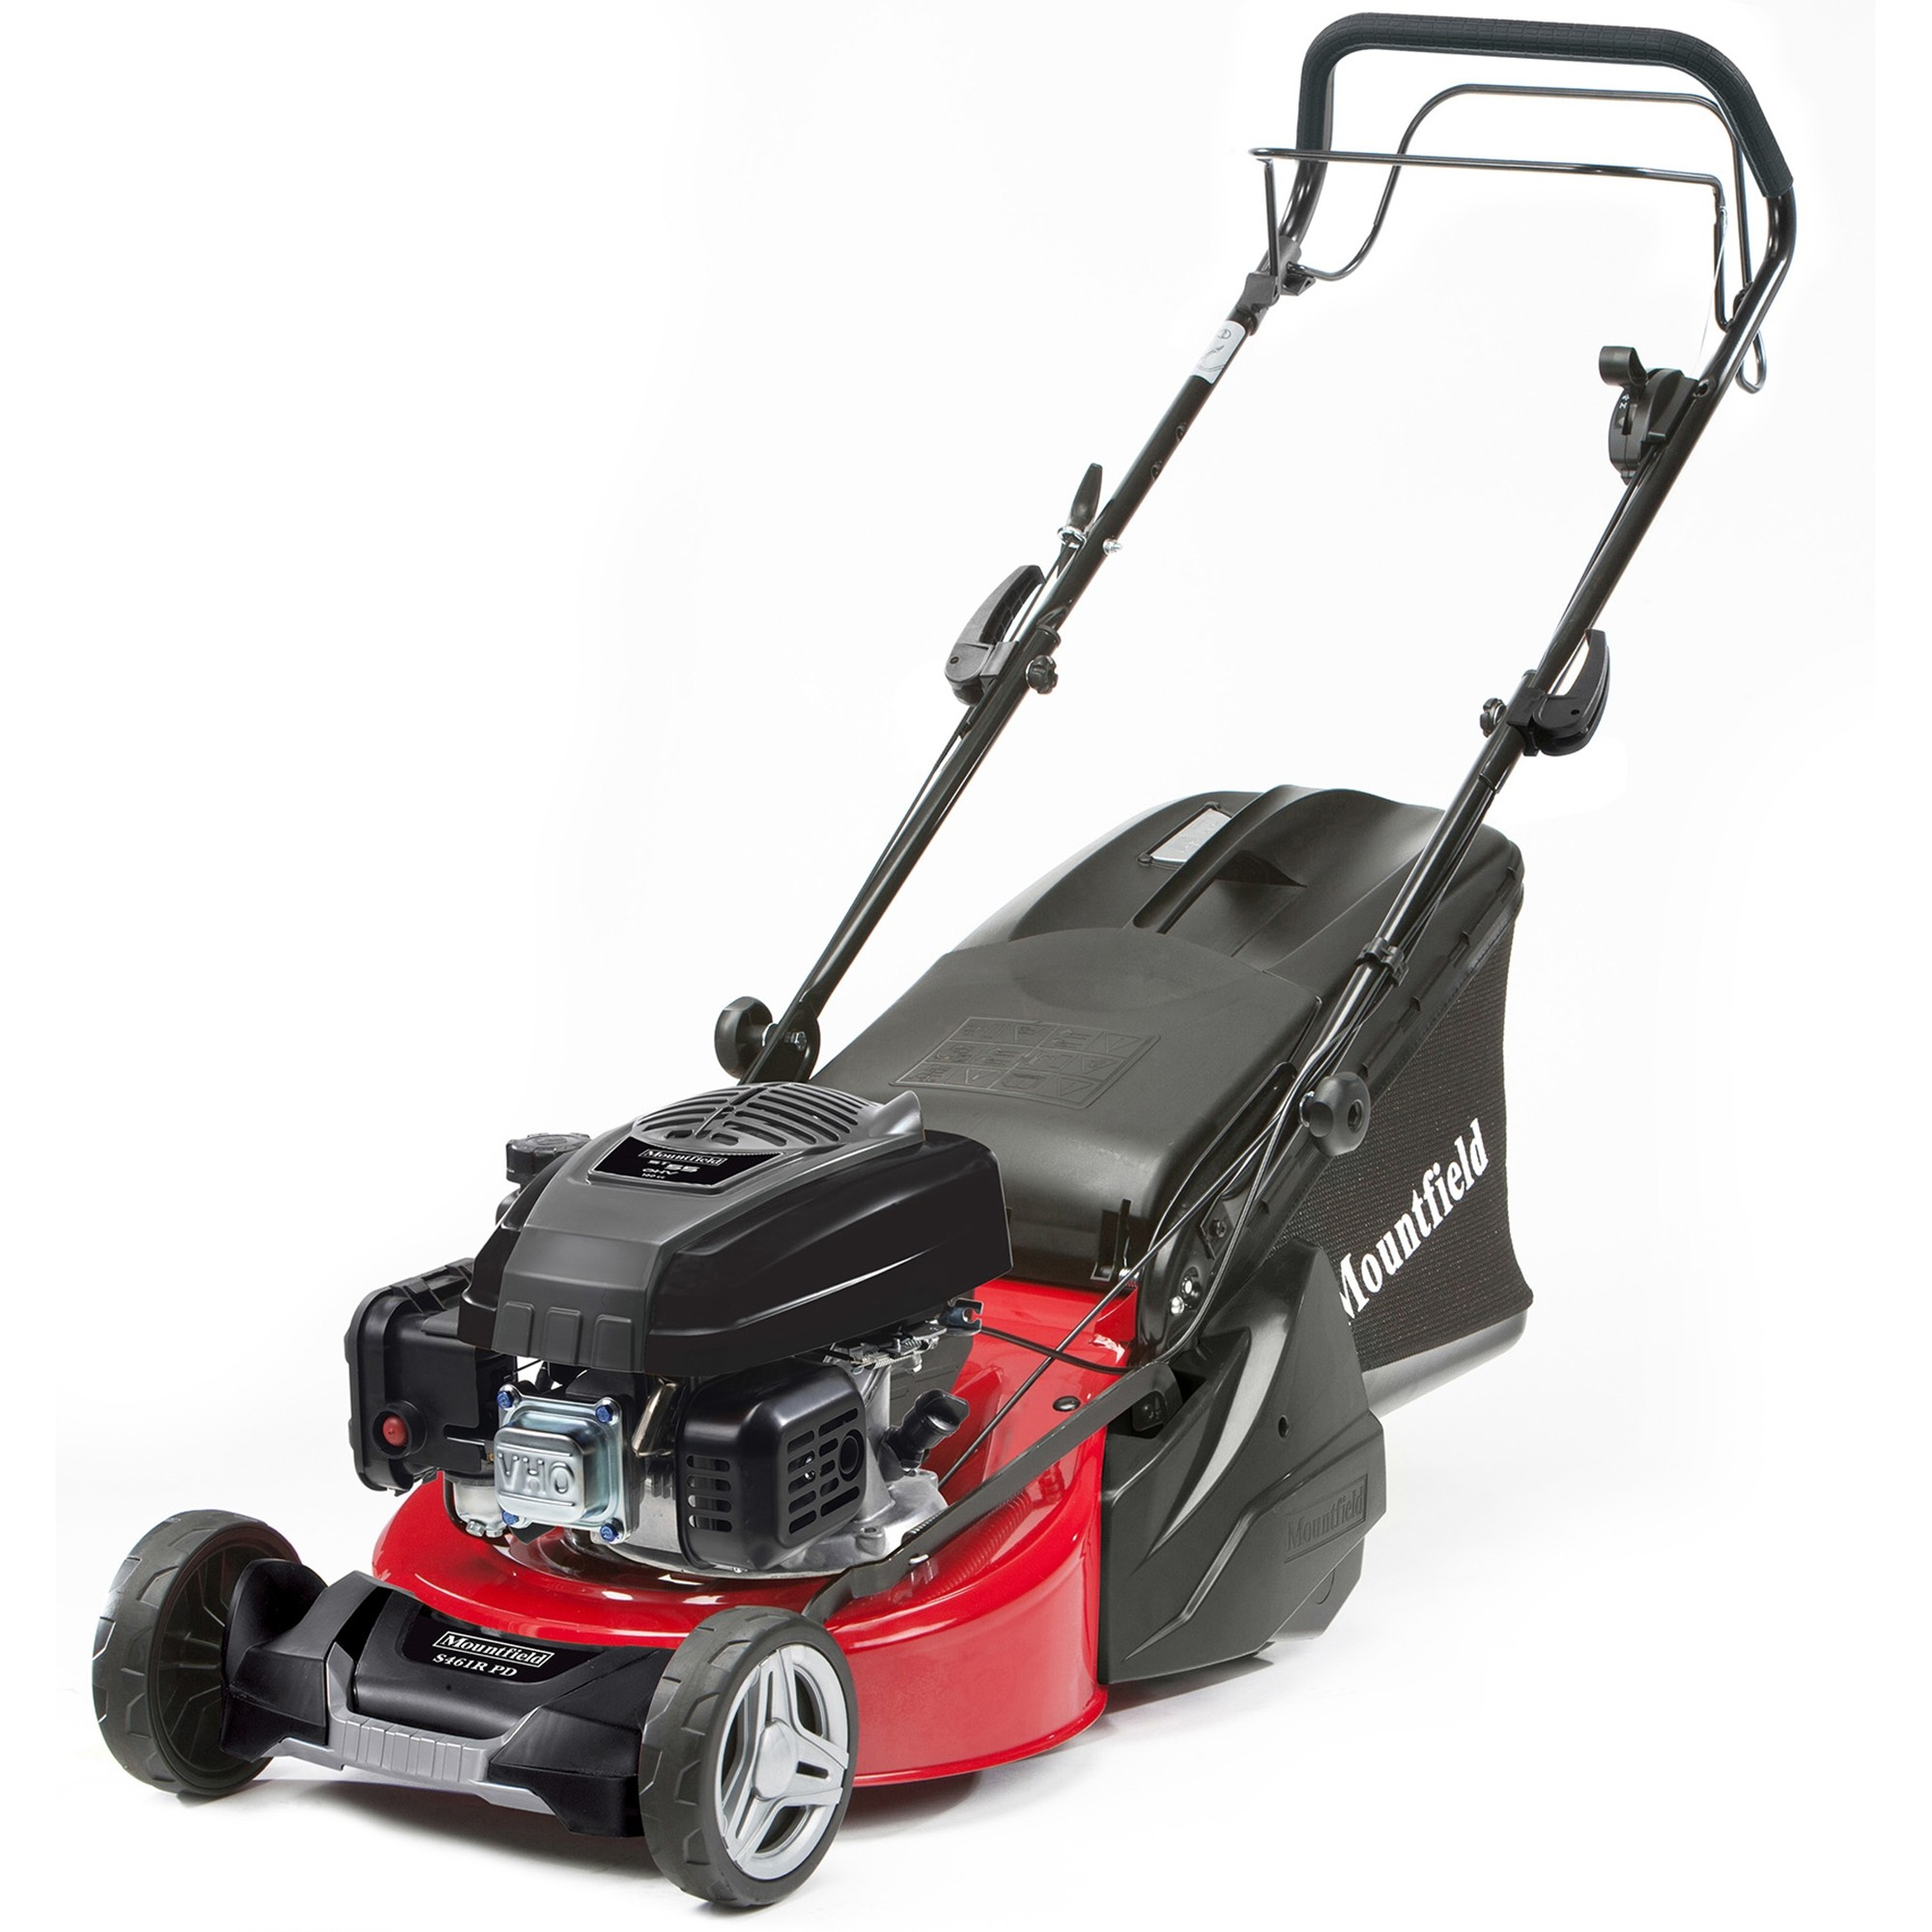 Mountfield S461R PD 46CM Self-propelled Rear Roller Lawnmower